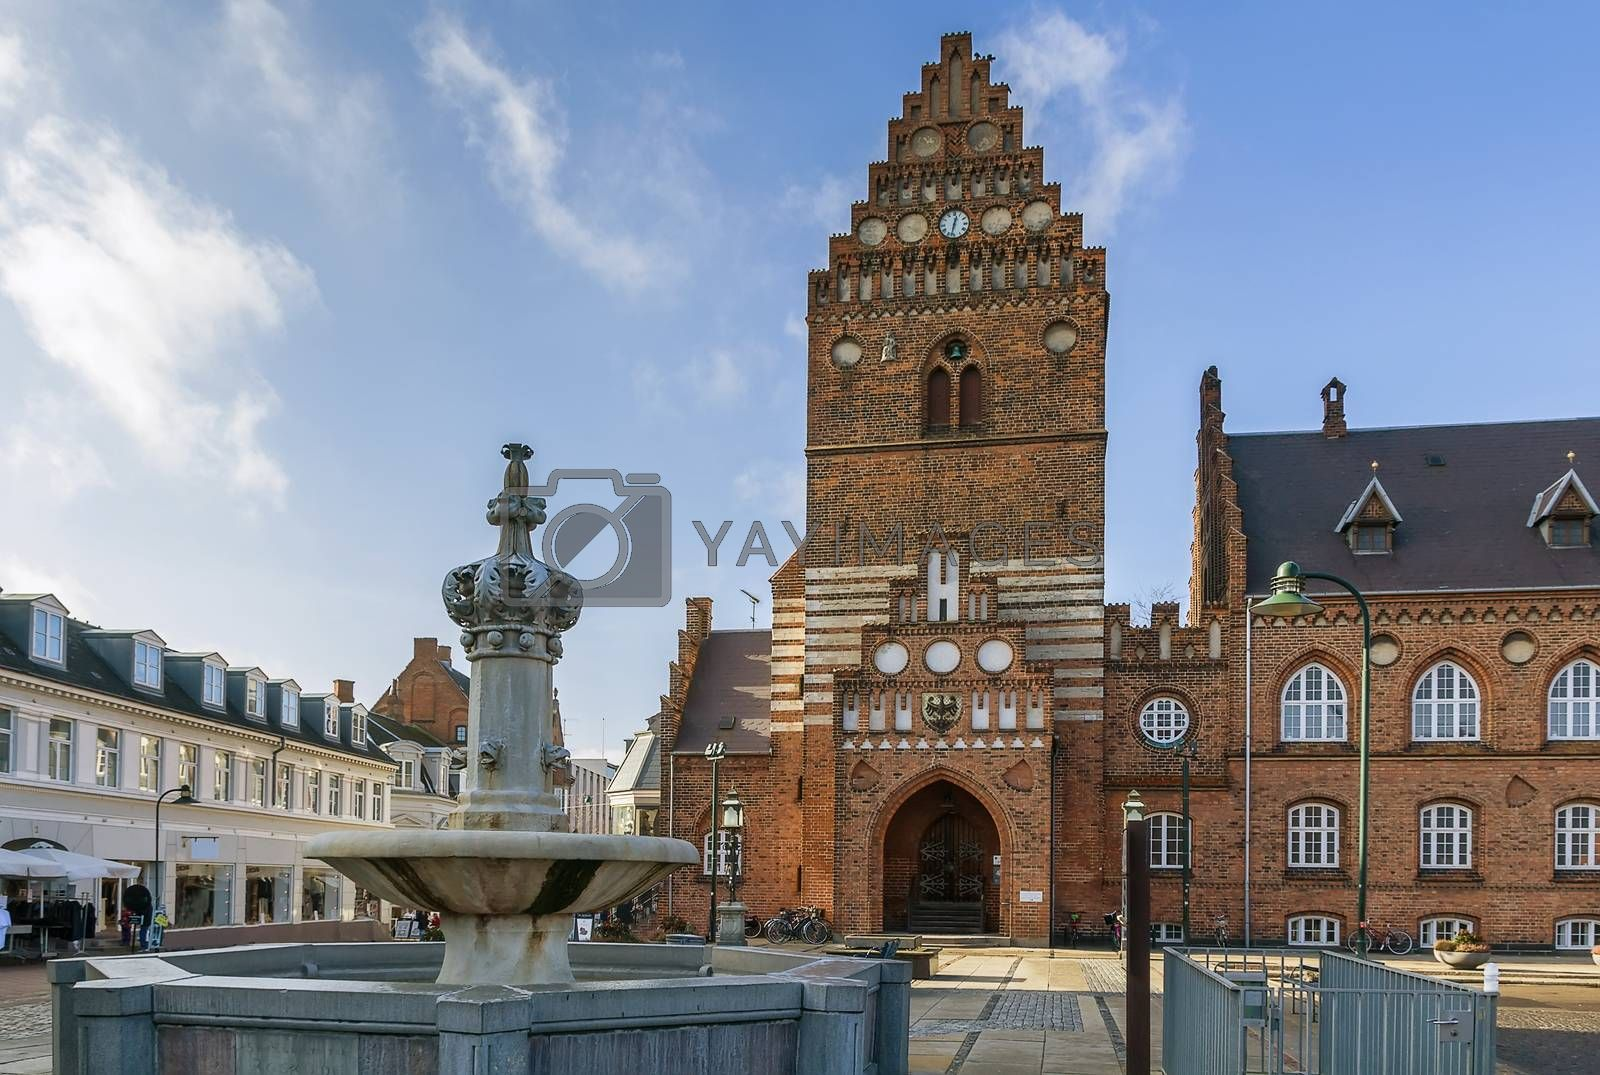 Town hall, Roskilde by borisb17